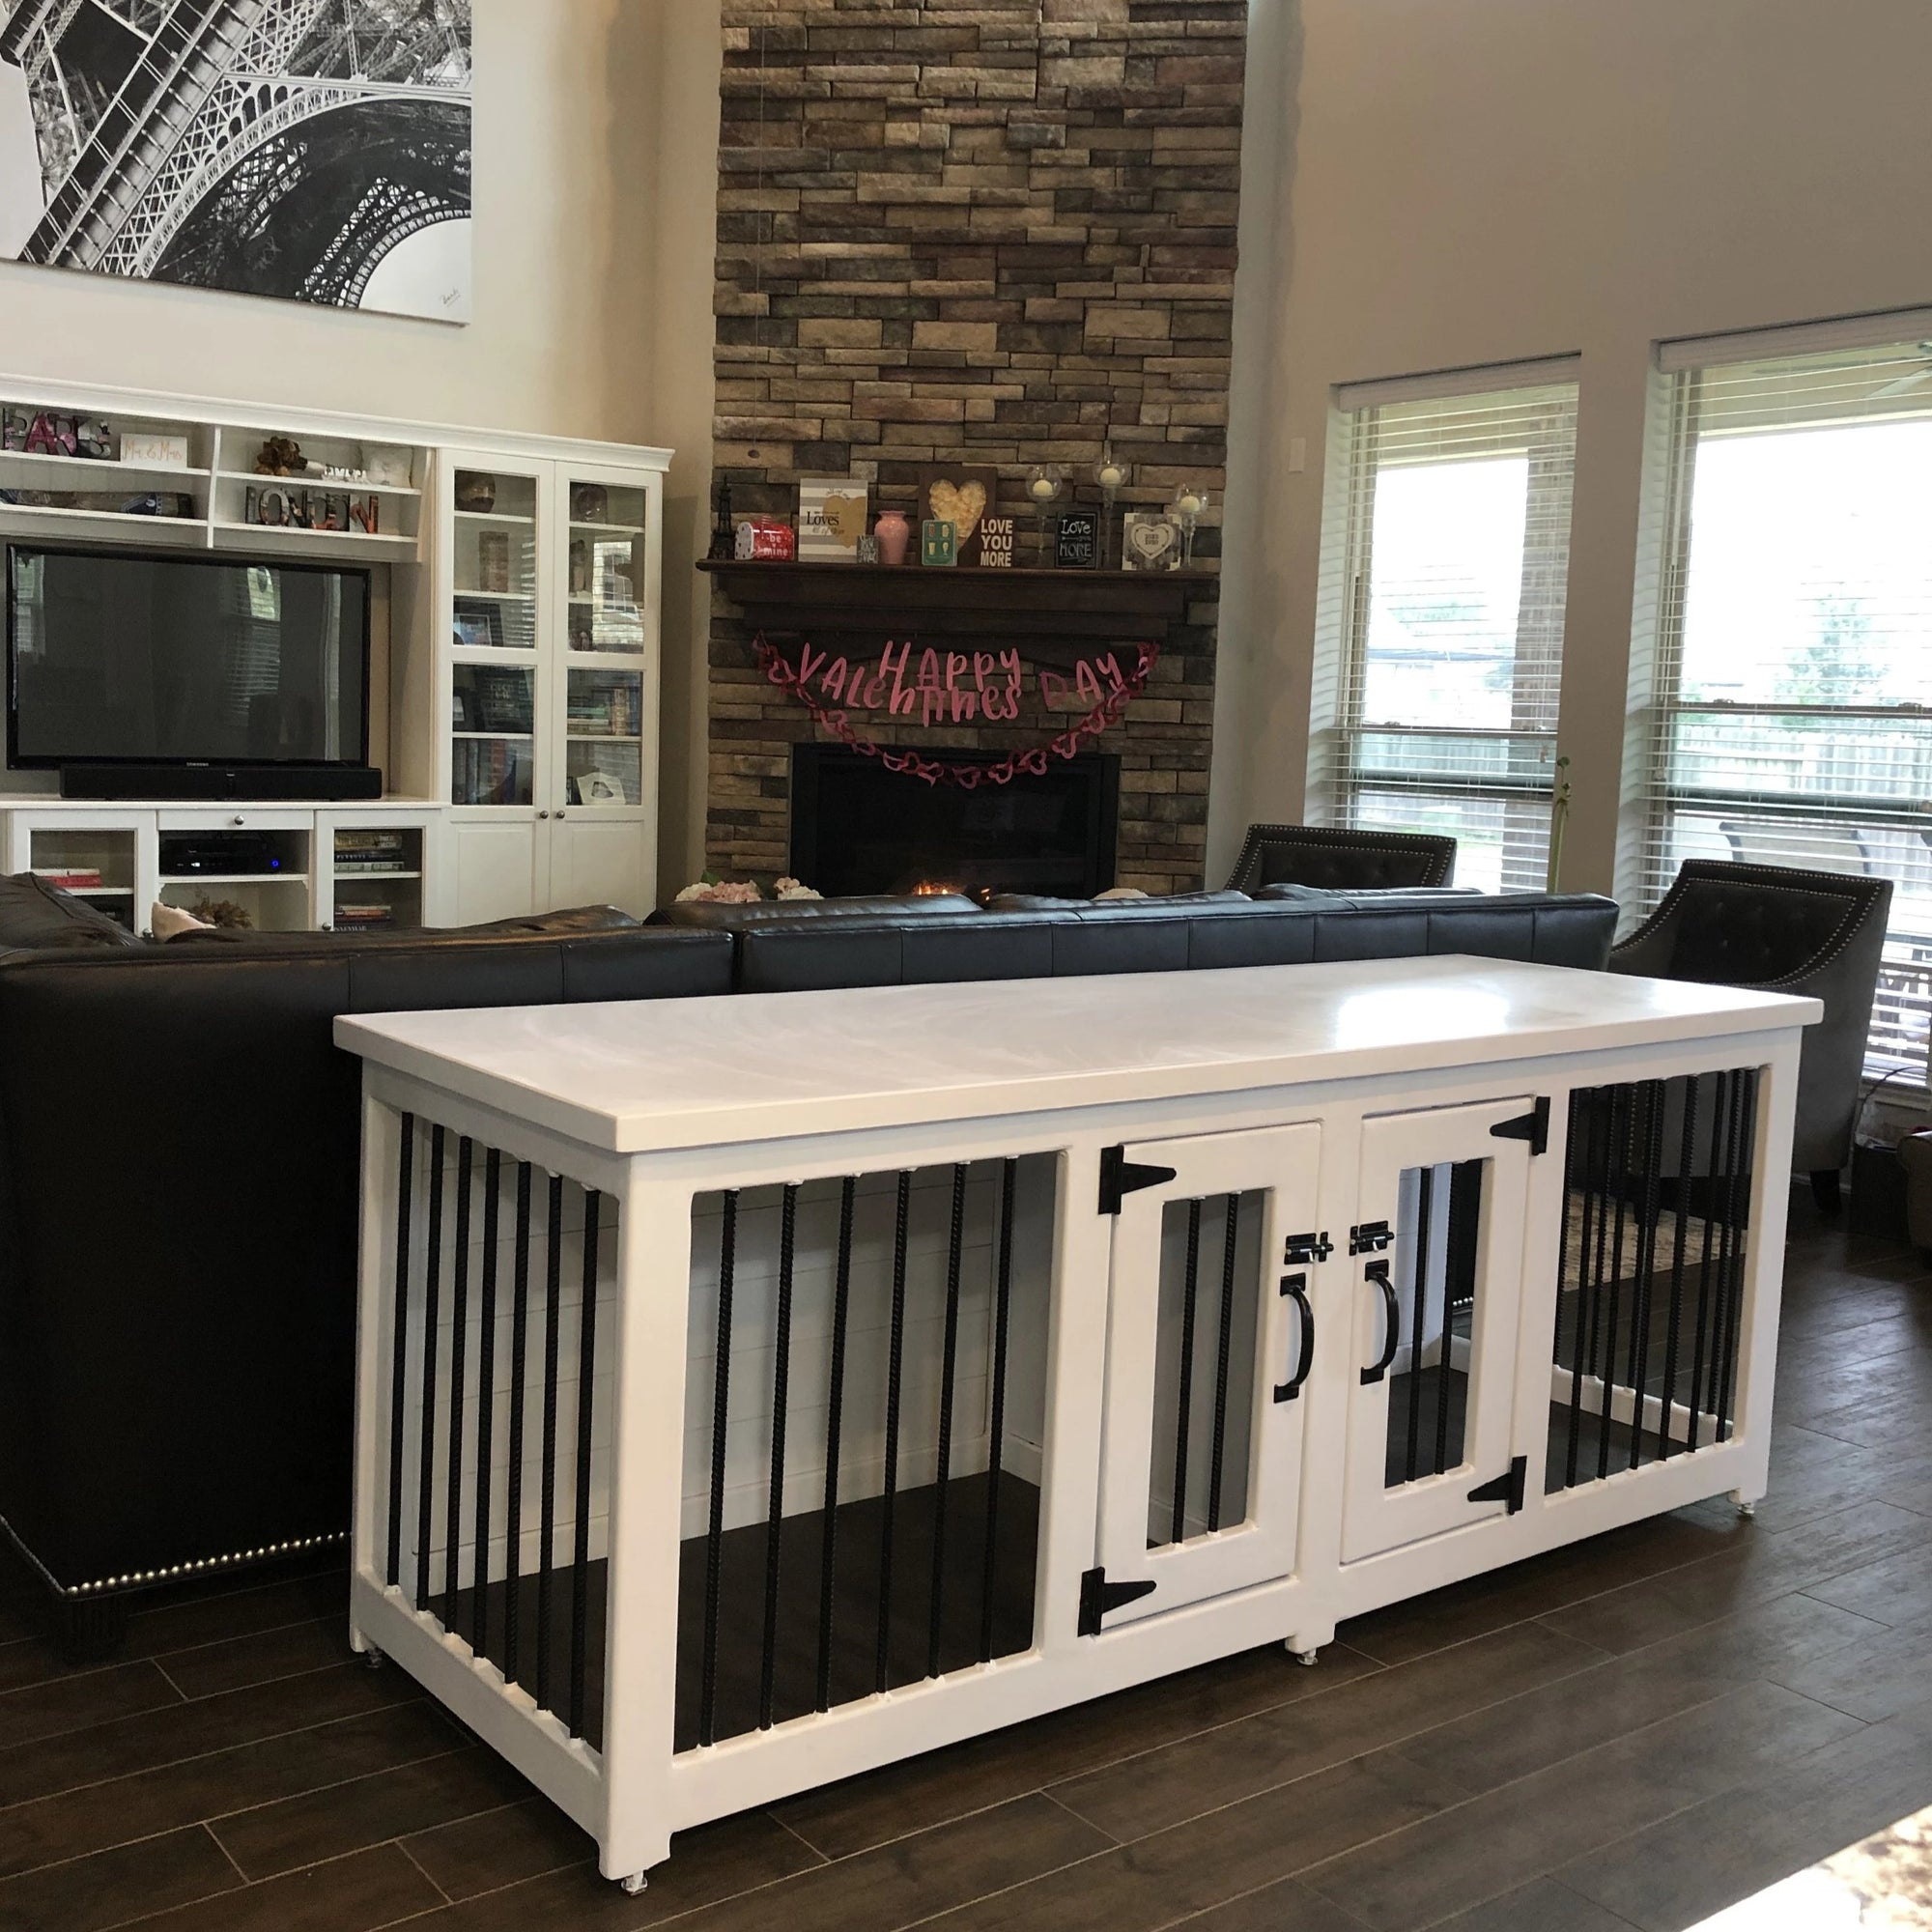 White and Black Metal Dog Kennel in a living room in Houston Texas